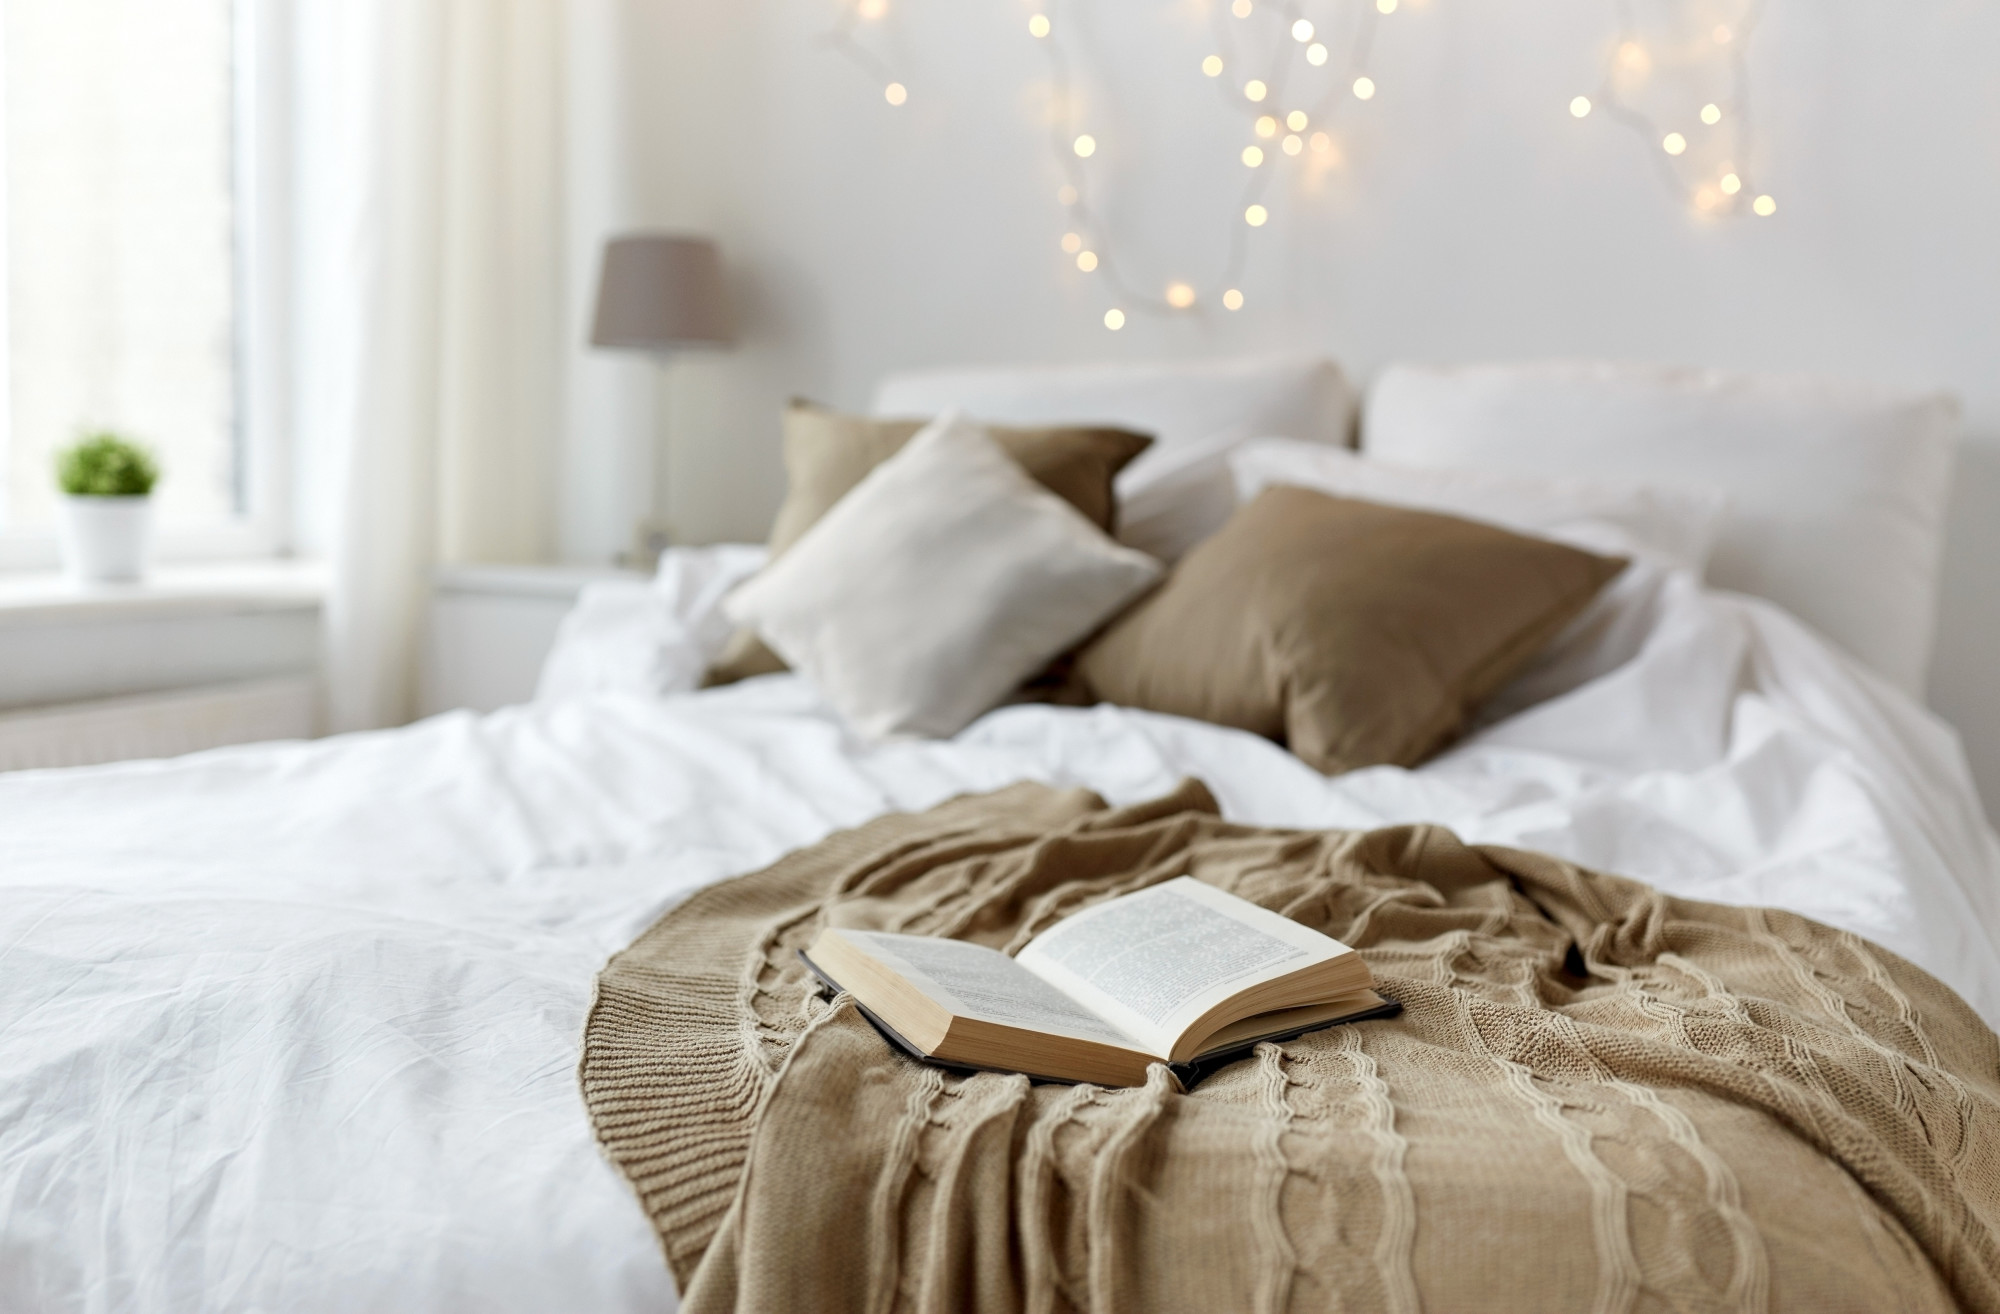 Take Your Home Decor to the Next Level With Custom Bedding